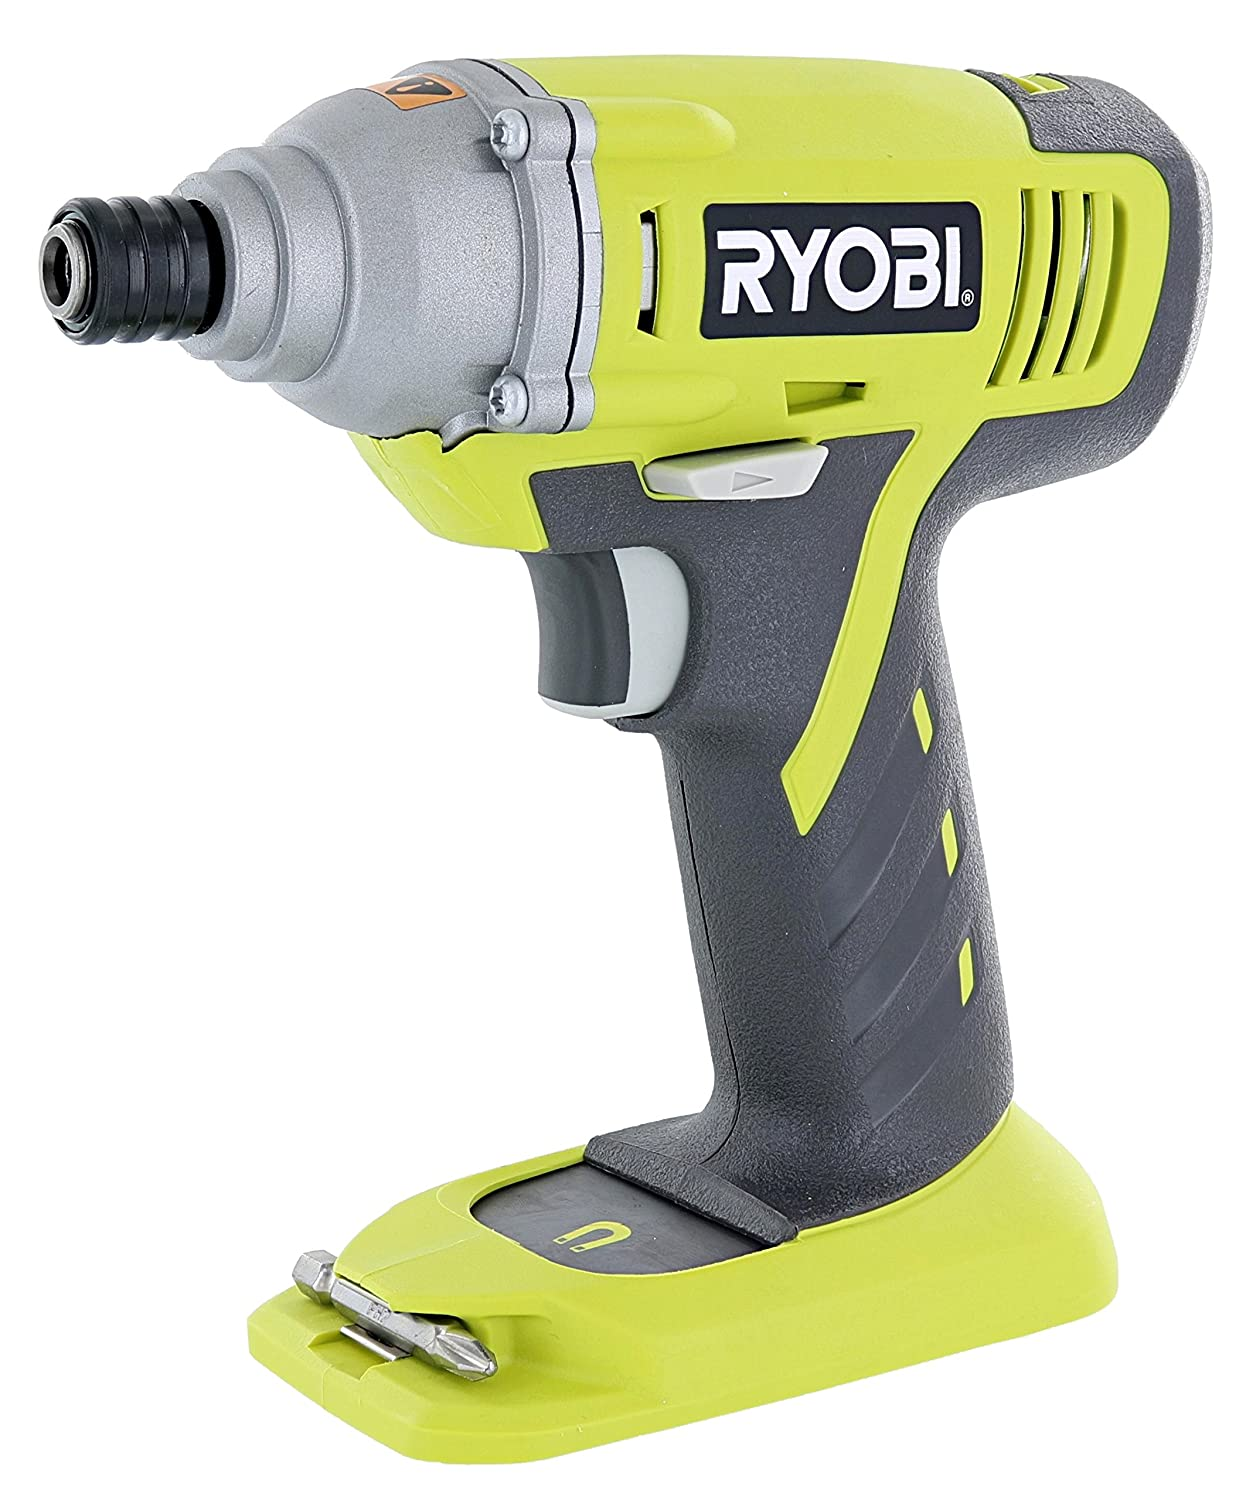 Ryobi P234g One 18-Volt Lithium Ion Cordless Impact Driver Battery Not Included Power Tool Only